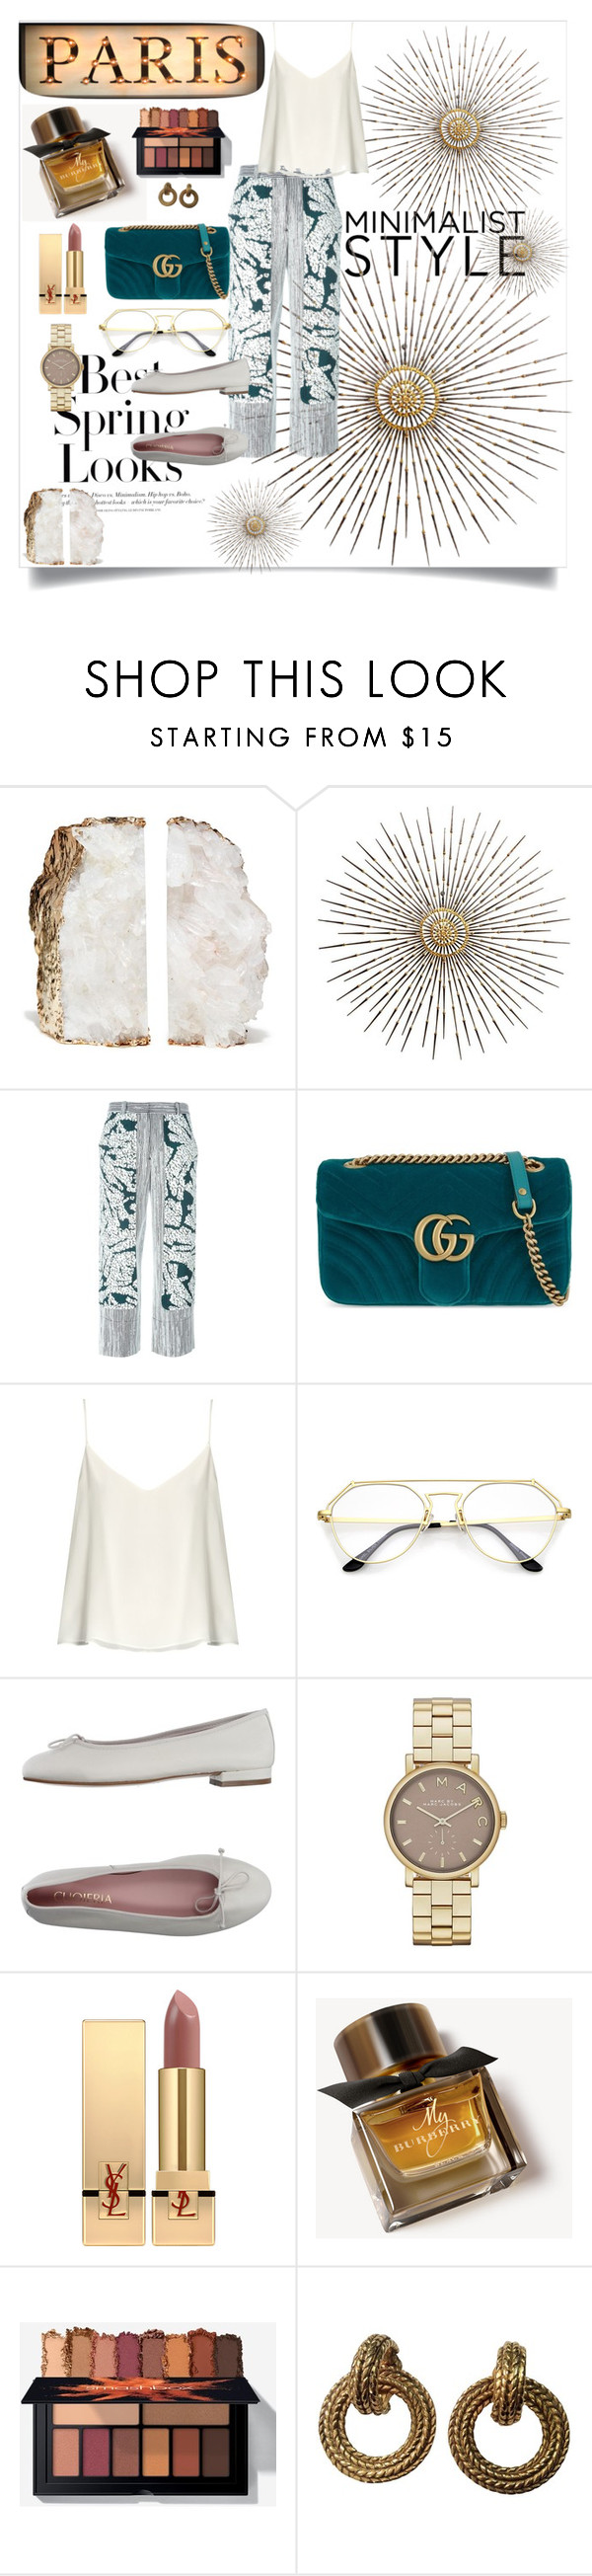 """Без названия #41"" by sabilatifova ❤ liked on Polyvore featuring H&M, Cédric Charlier, Gucci, Raey, CUOIERIA, Marc Jacobs, Yves Saint Laurent, Burberry and Chanel"